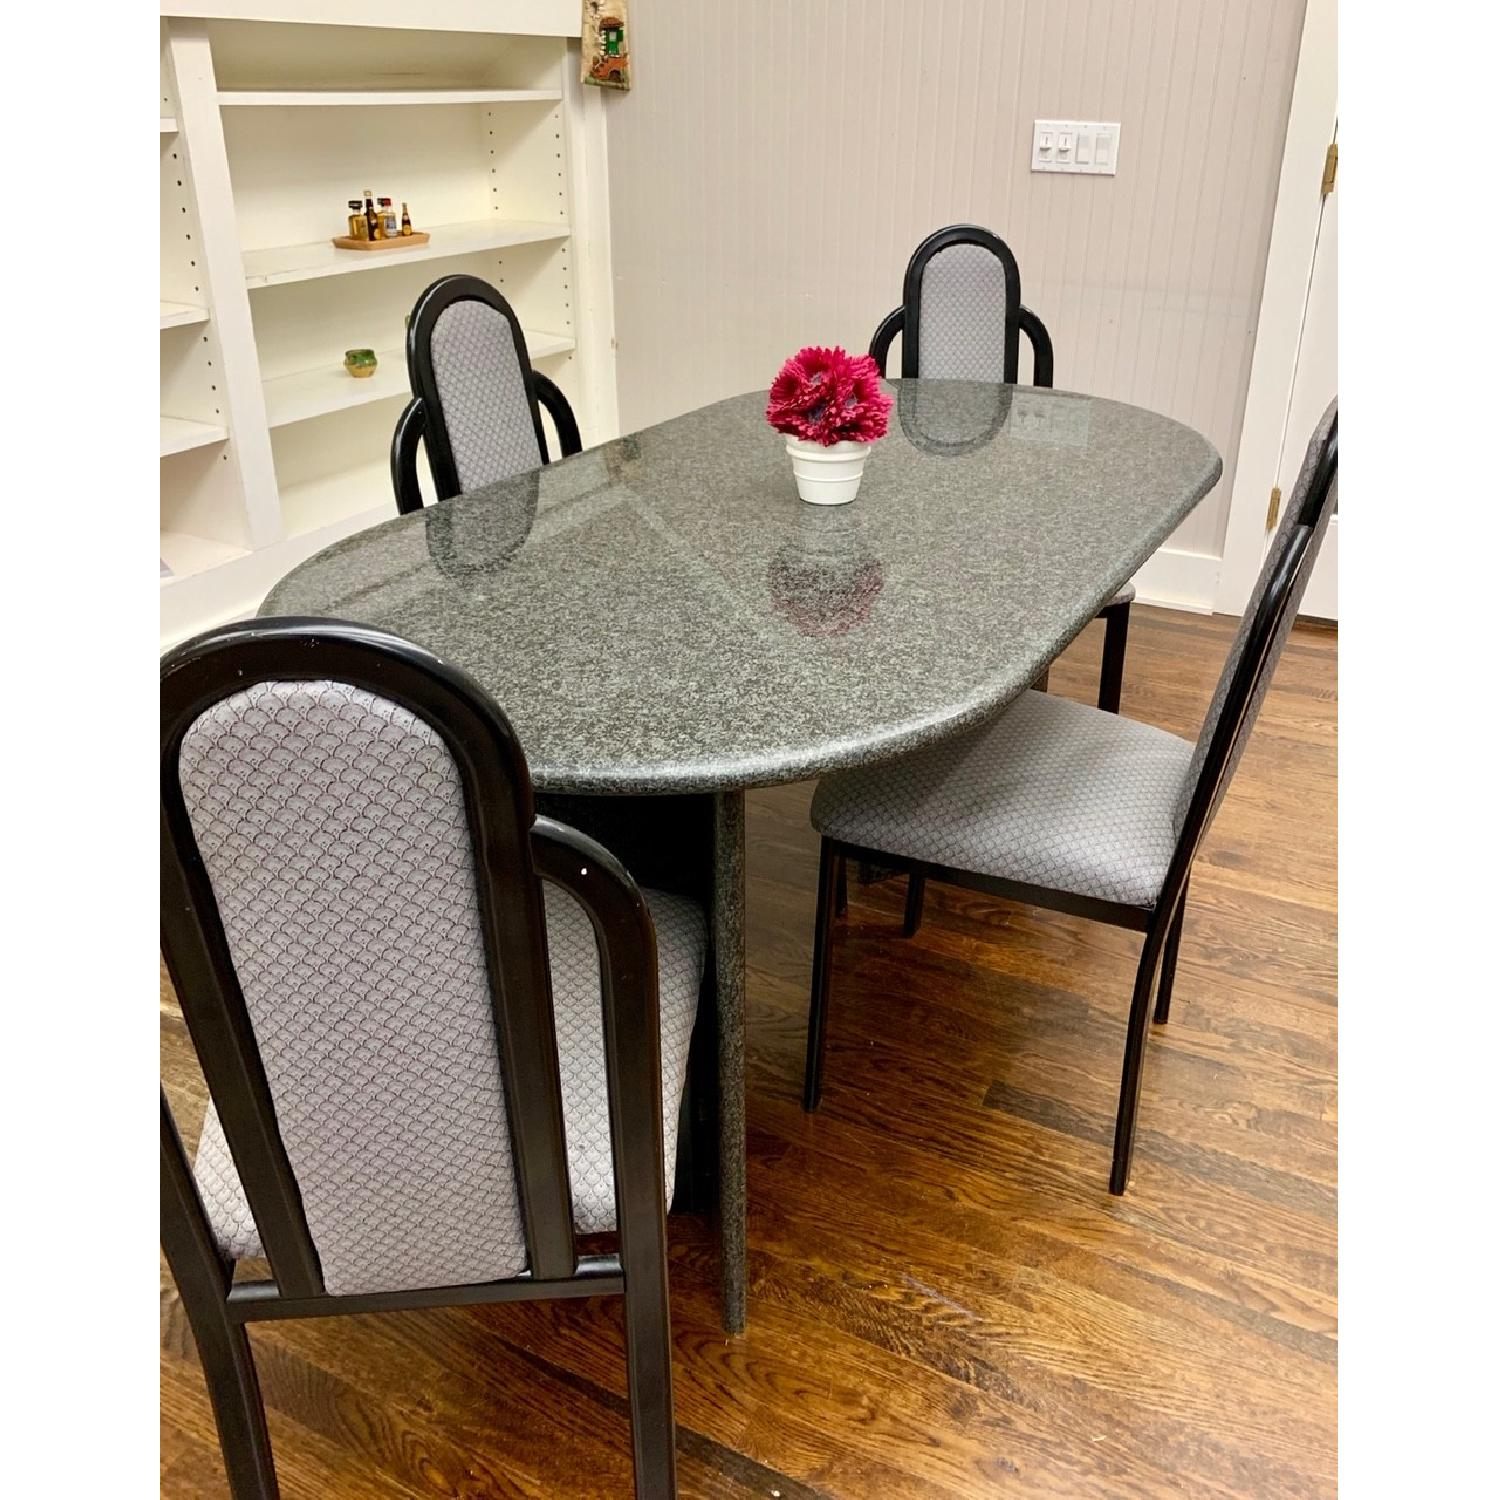 Granite Top Dining Table w/ 4 Chairs - image-1